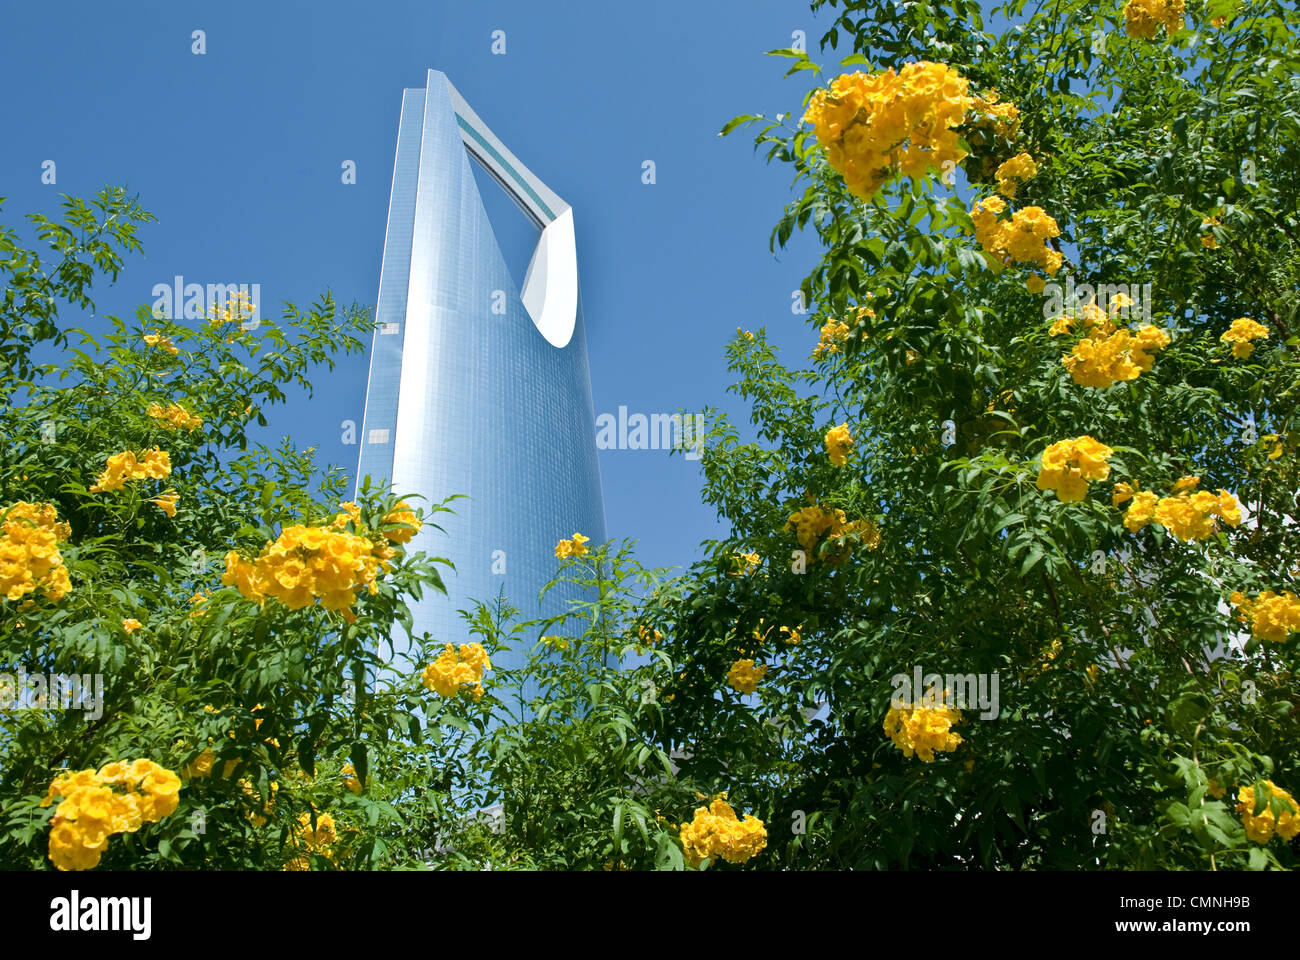 Asie Arabie Saoudite Riyadh l'architectural Kingdom Tower Photo Stock